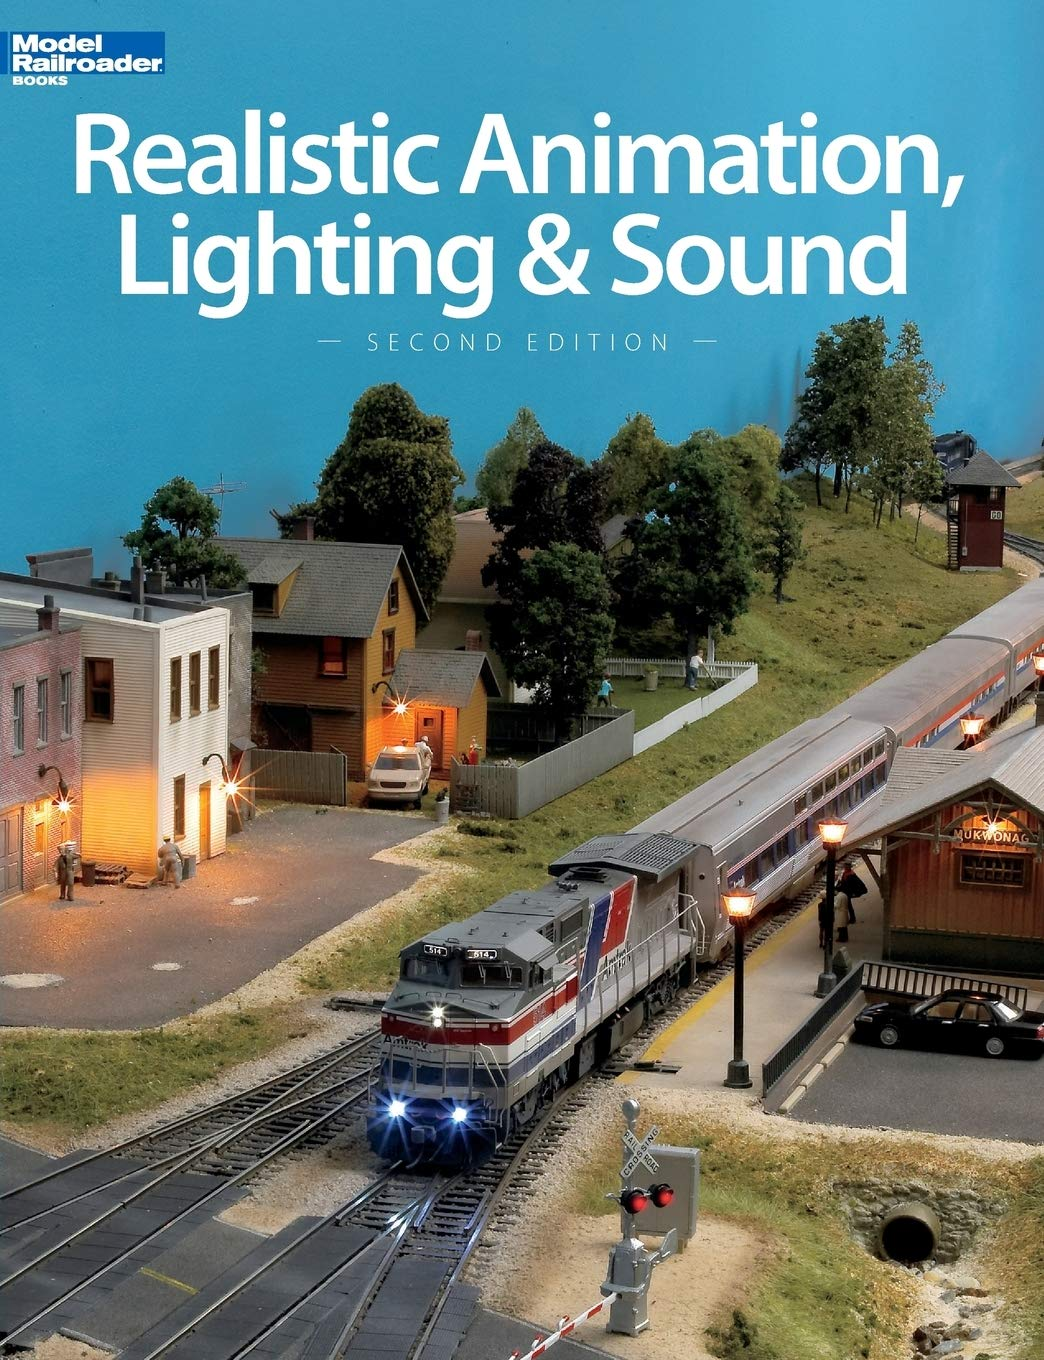 Realistic Animation, Lighting & Sound 2nd edition Model Railroader Books C10